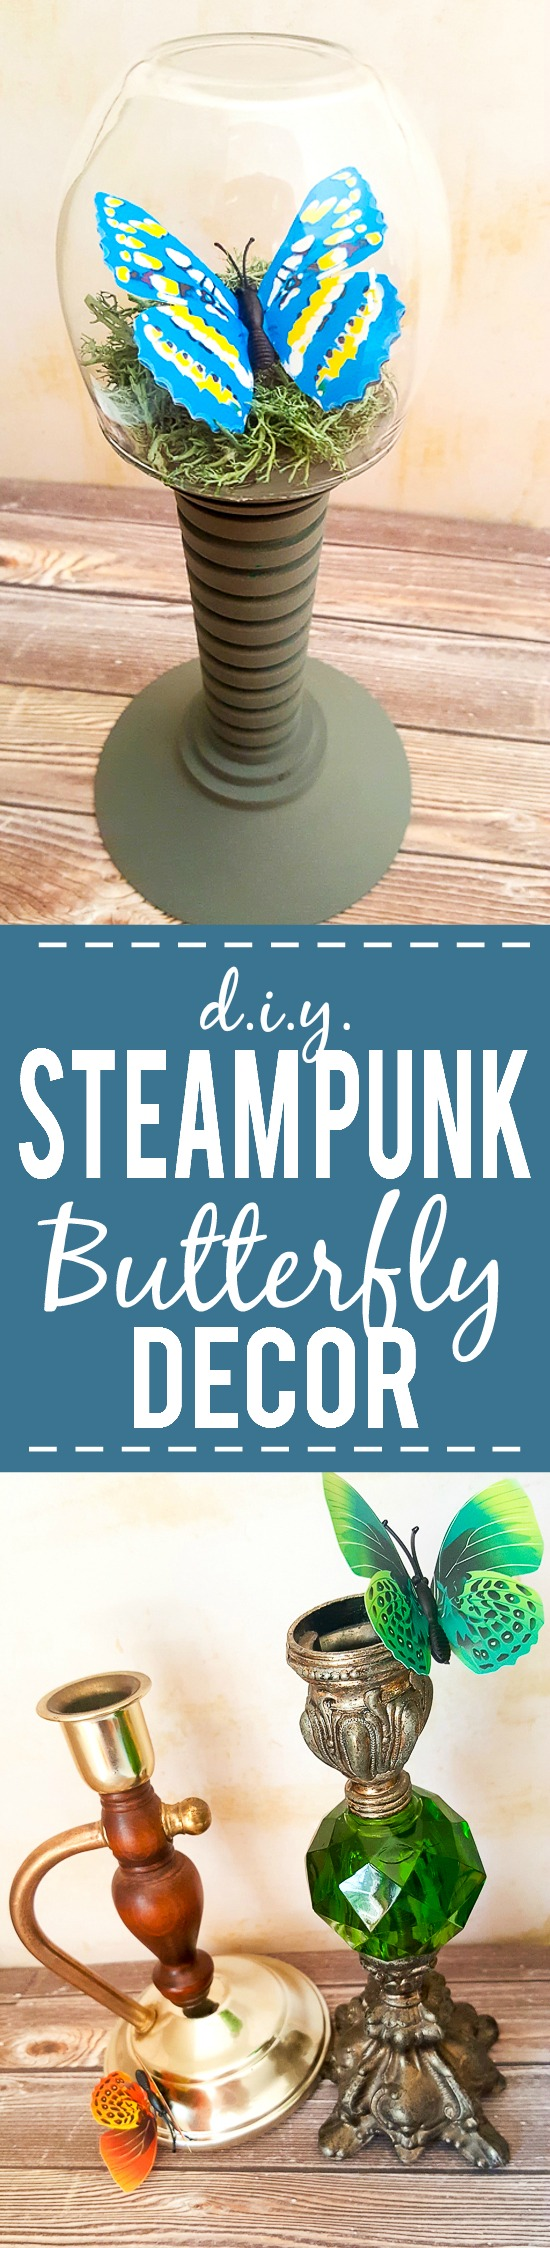 DIY Steampunk Butterfly Decor -Make this unique and pretty DIY Steampunk Butterfly Decor project with just a few simple supplies, including some vintage finds from your local thrift store.